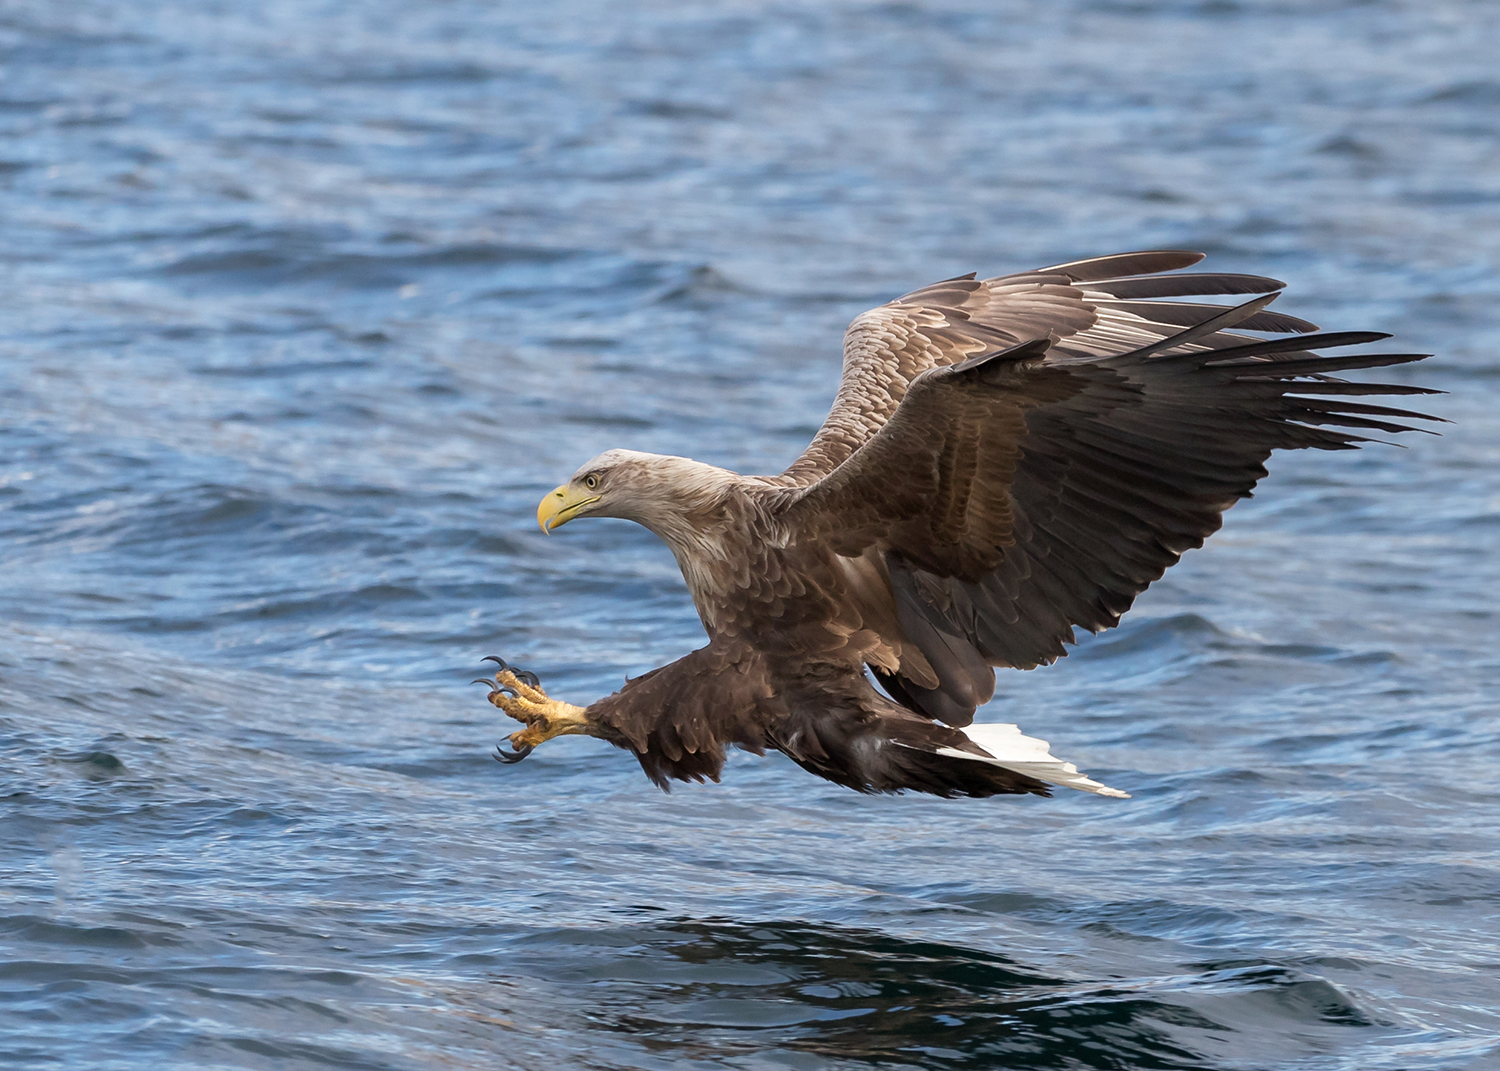 White Tailed Eagle diving for a fish